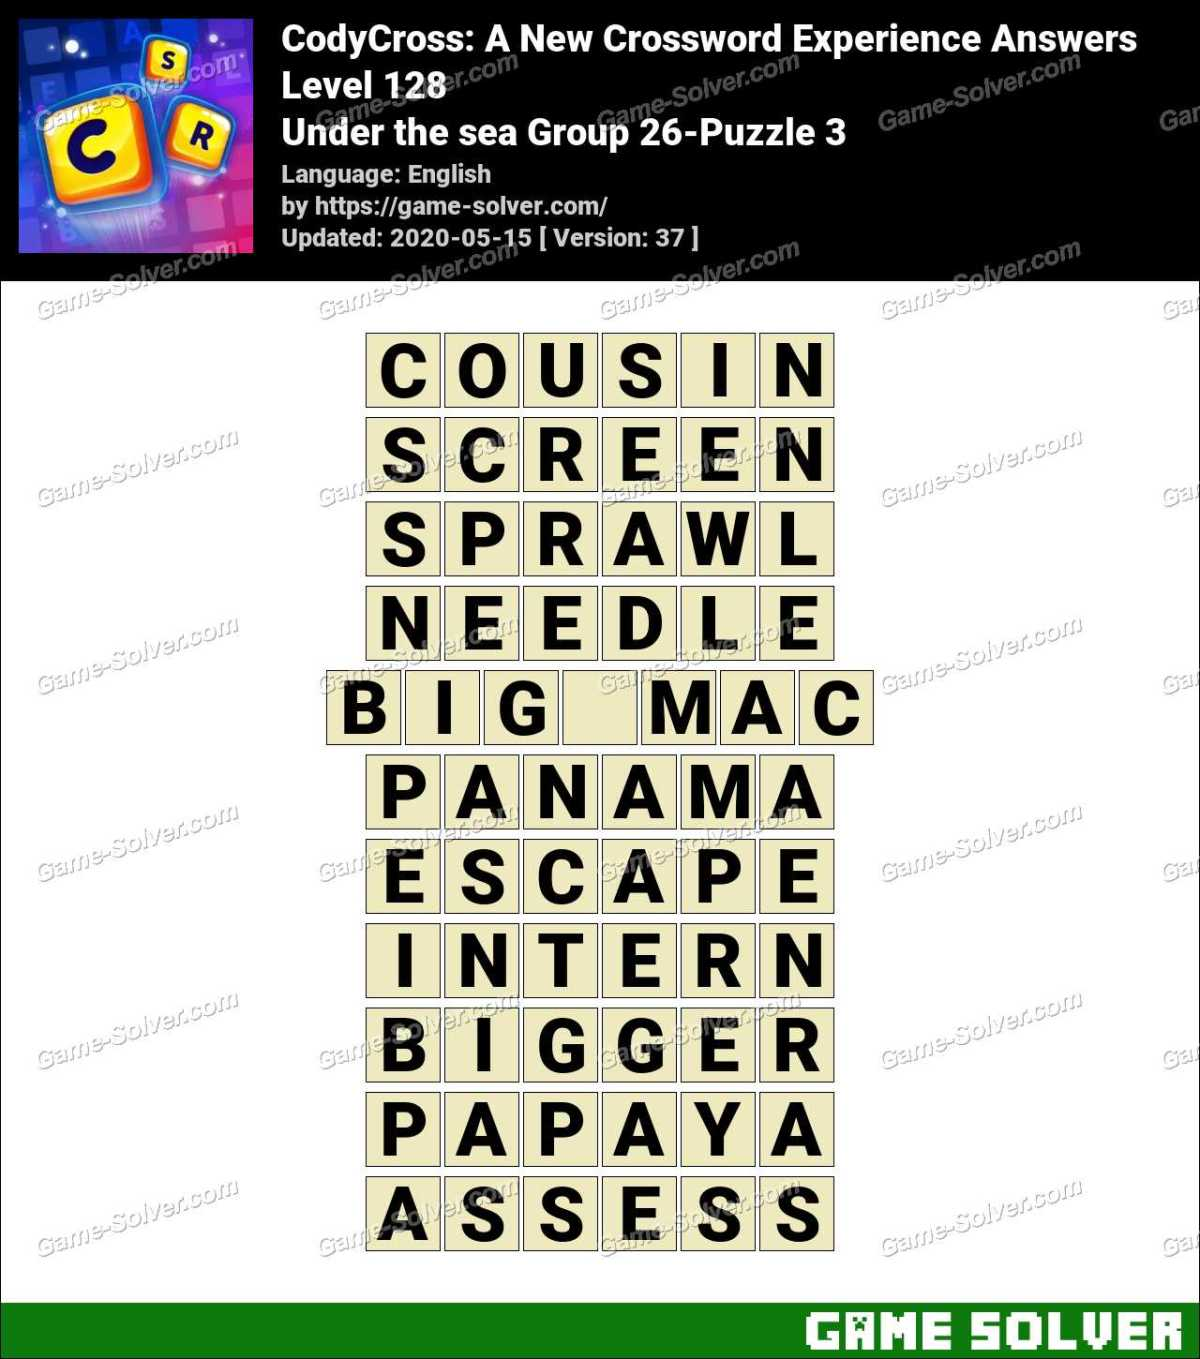 CodyCross Under the sea Group 26-Puzzle 3 Answers